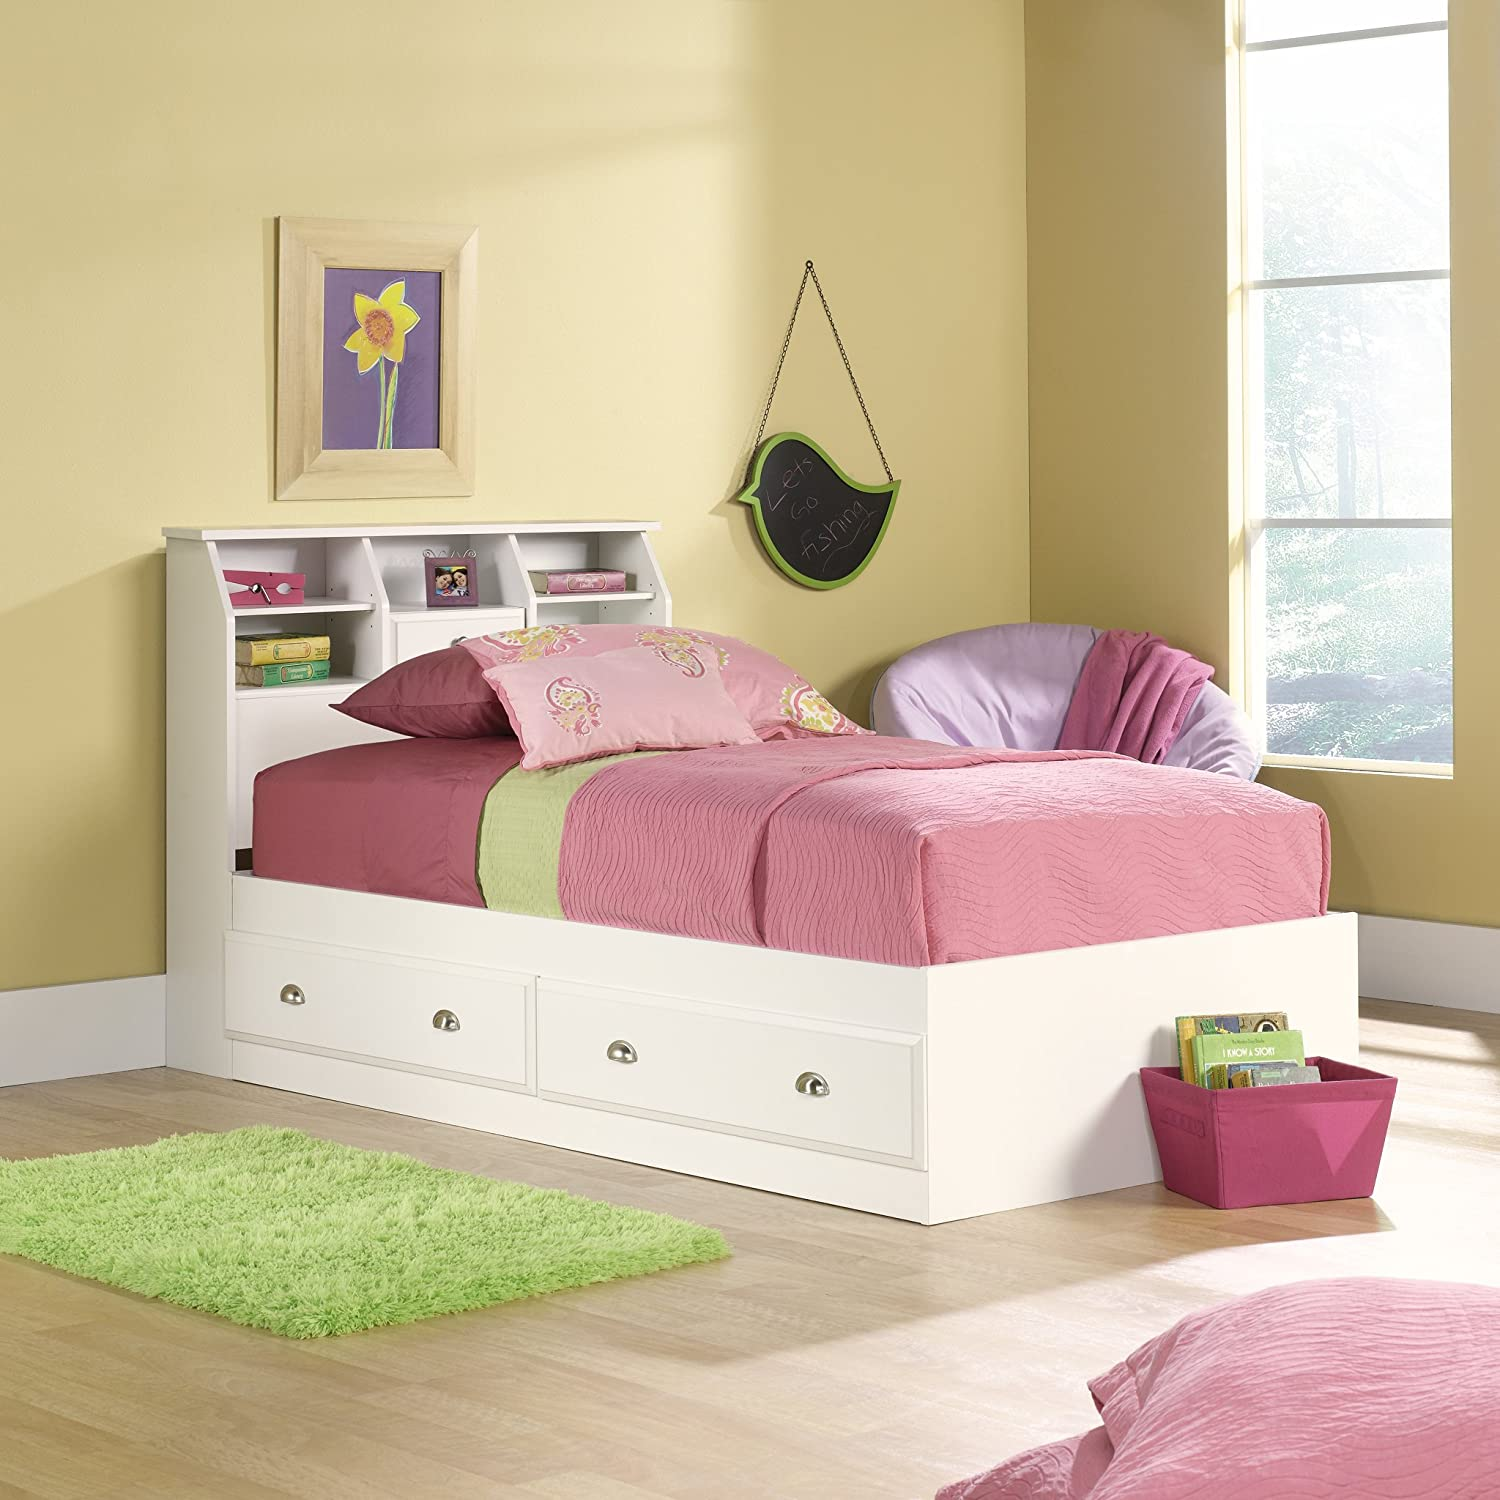 Best storage Twin Bed to Buy